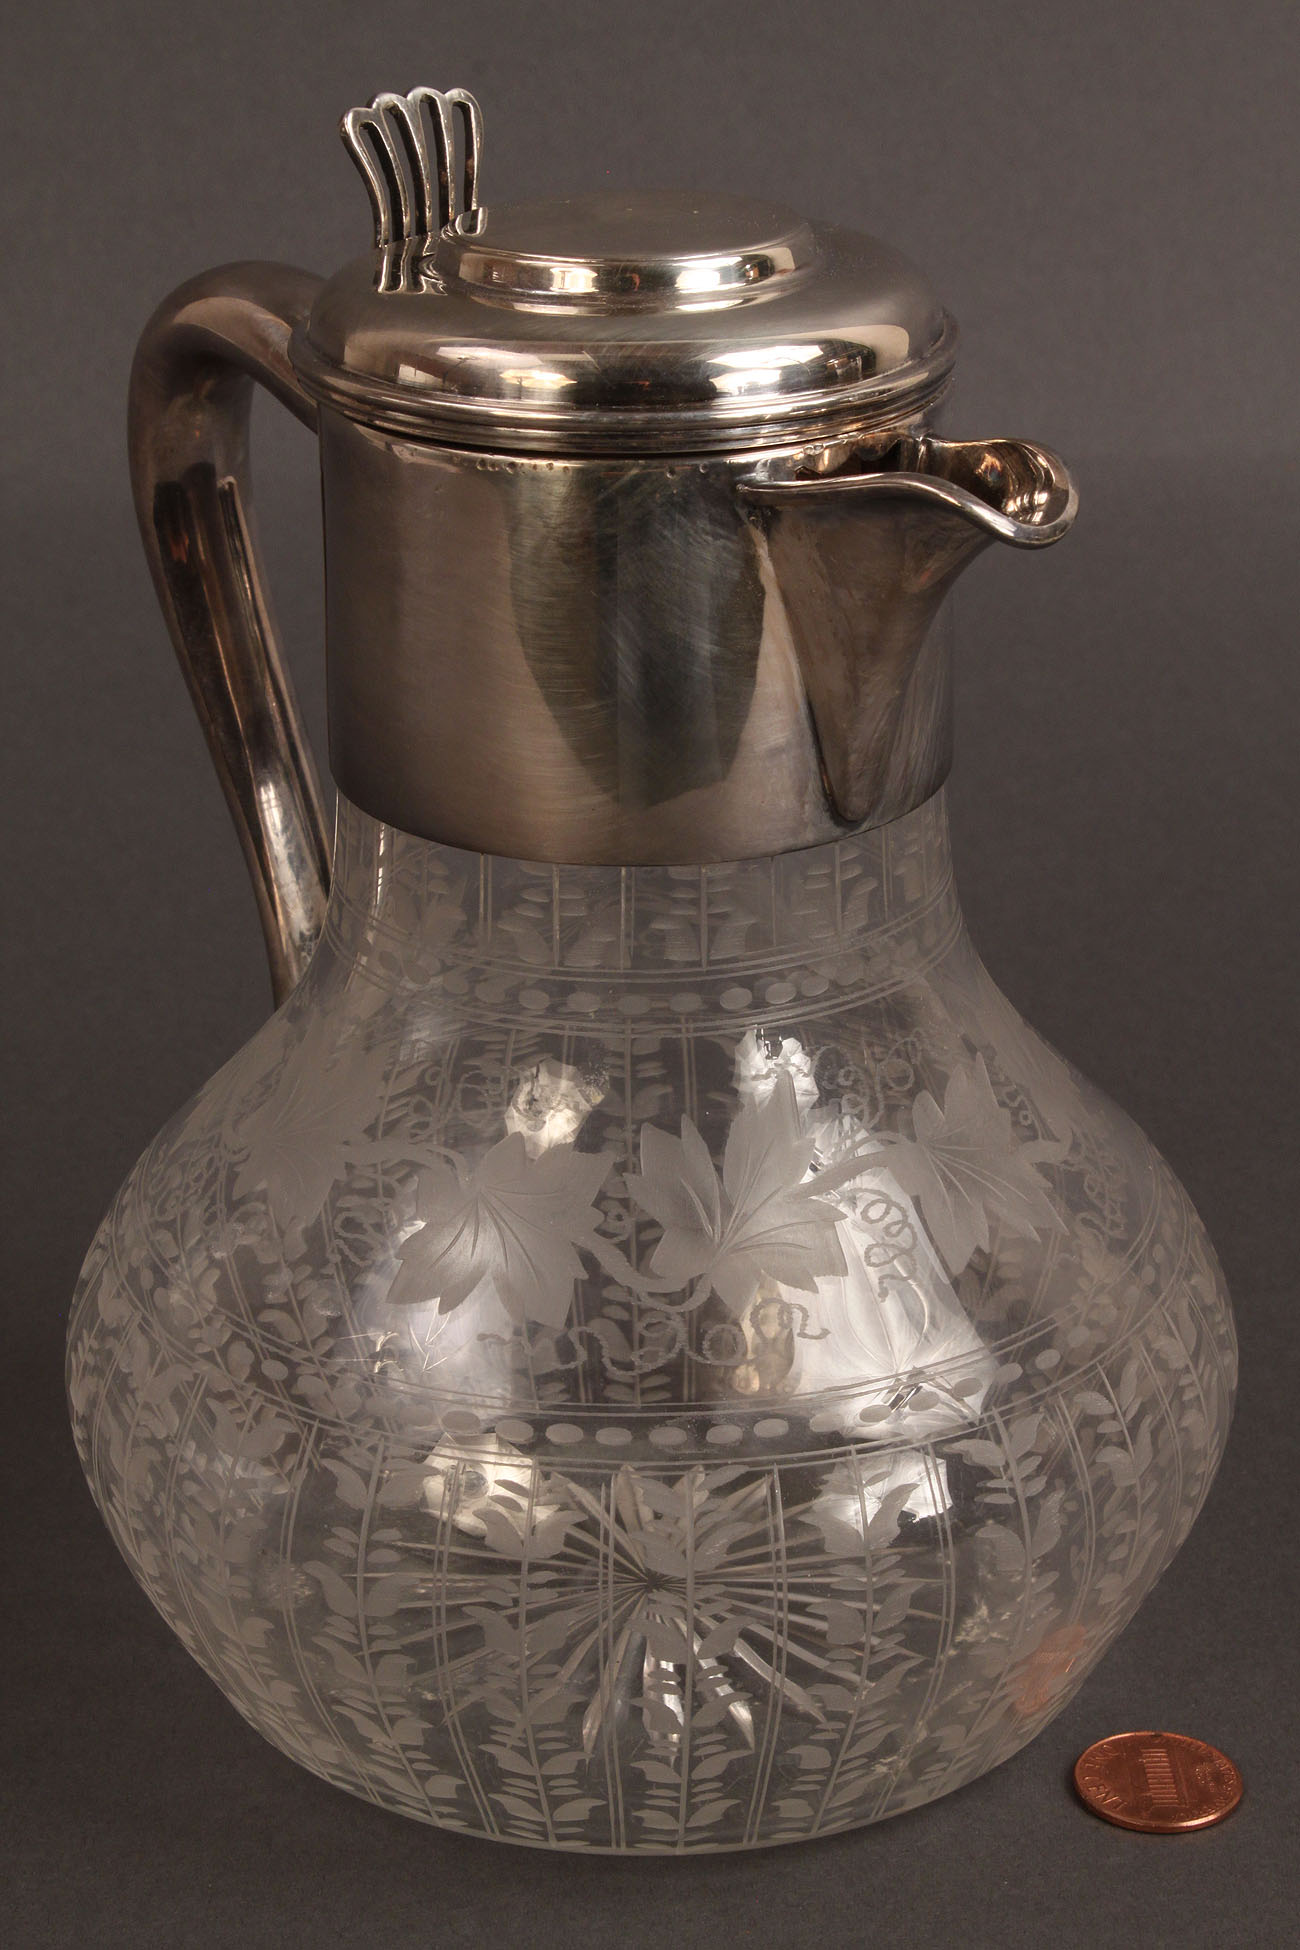 Lot 366 Engraved glass vase and pitcher Hawkes